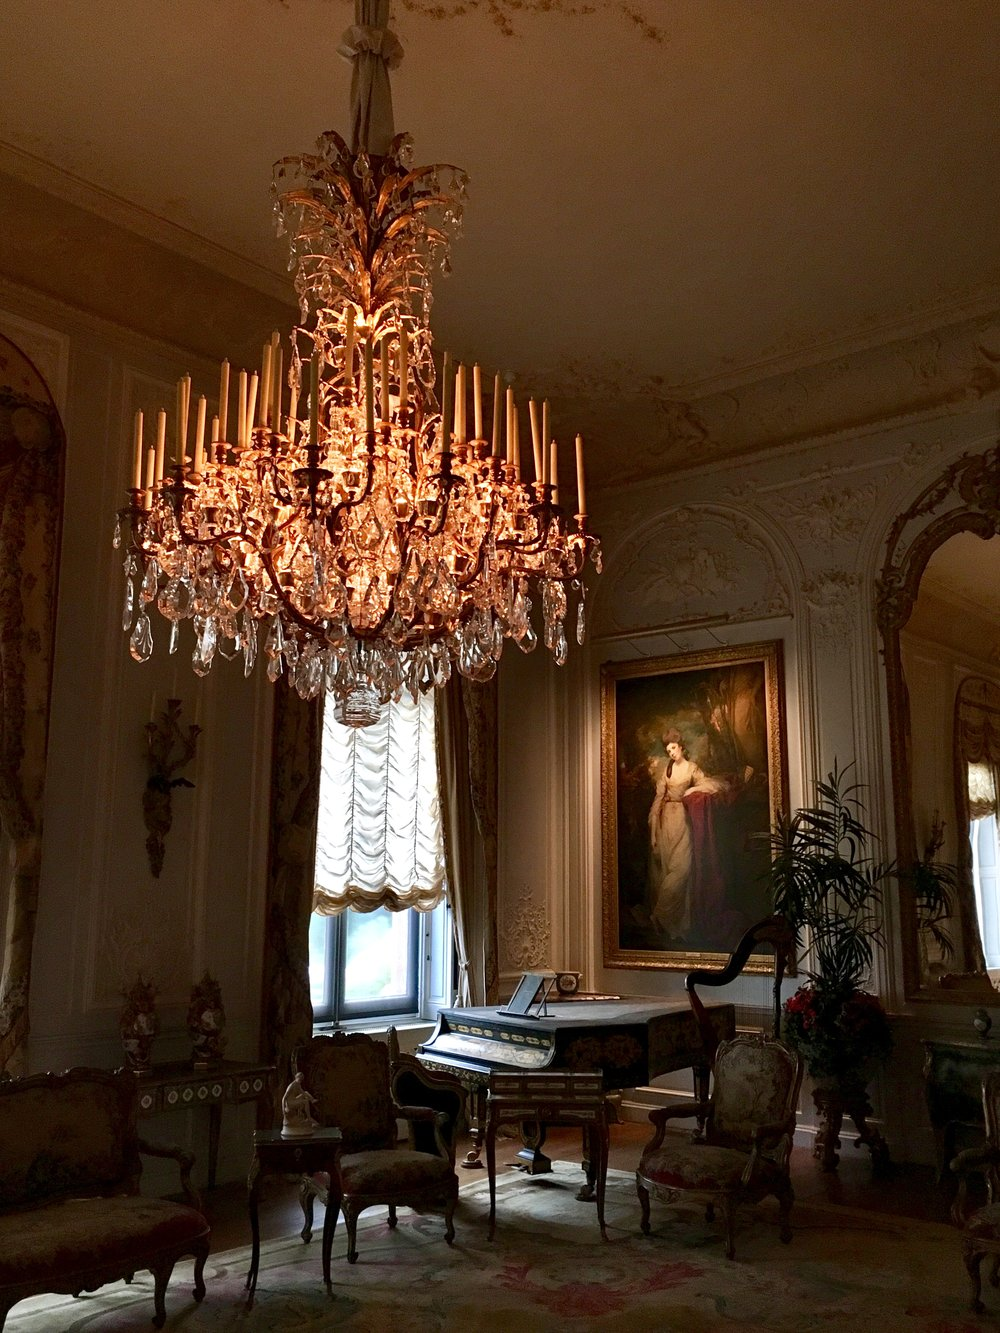 UK Waddesdon Manor chandelier National Trust French Chateau Rothschild Buckinghamshire garden chateau Eileen Hsieh Follow That Bug .jpg